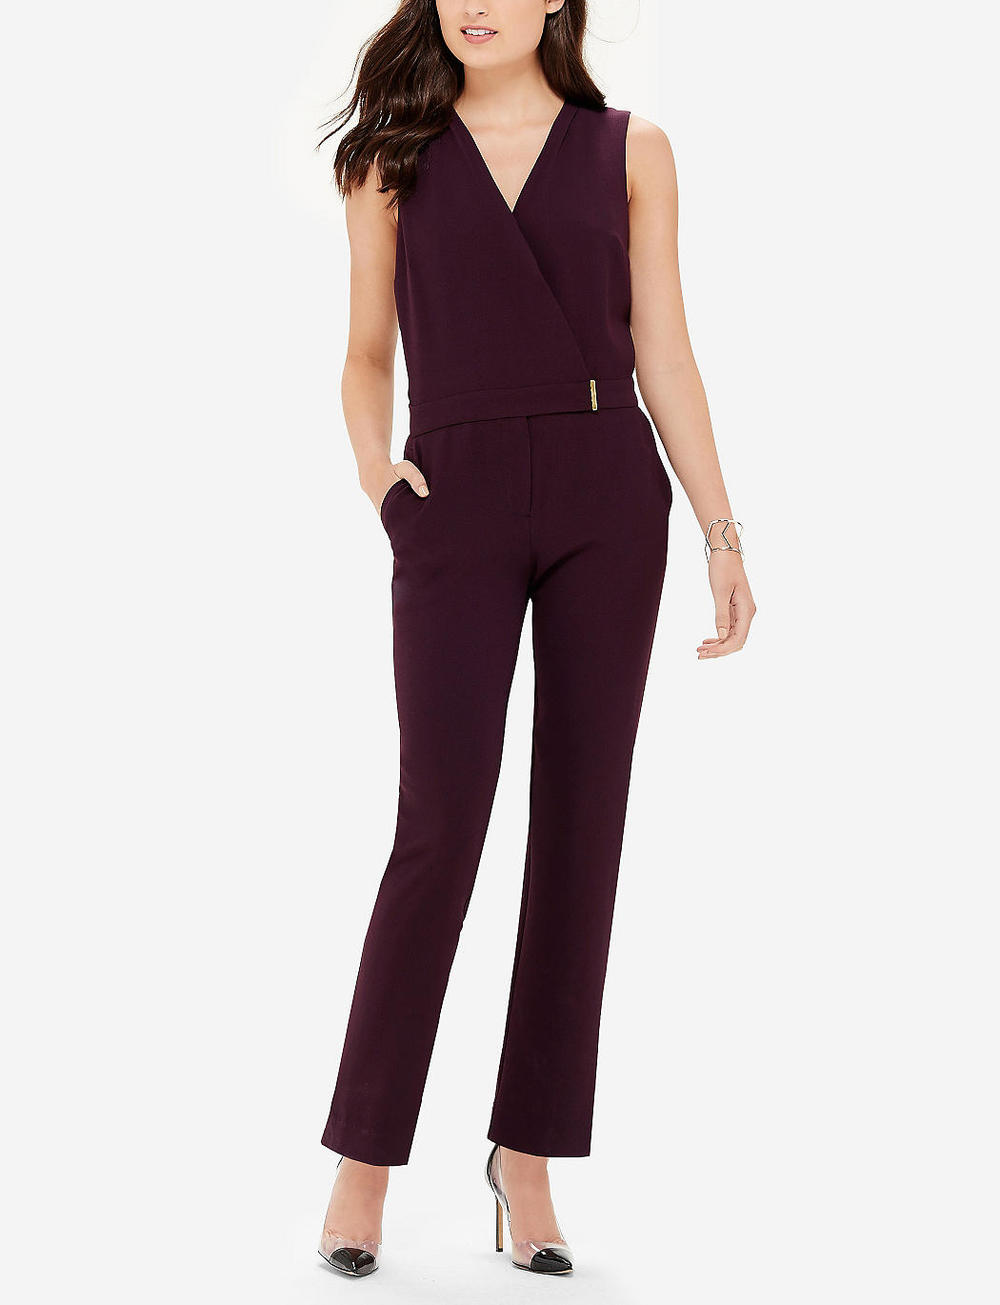 Tall Wrap Front Jumpsuit. The Limited. Was: $119 Now: $47.